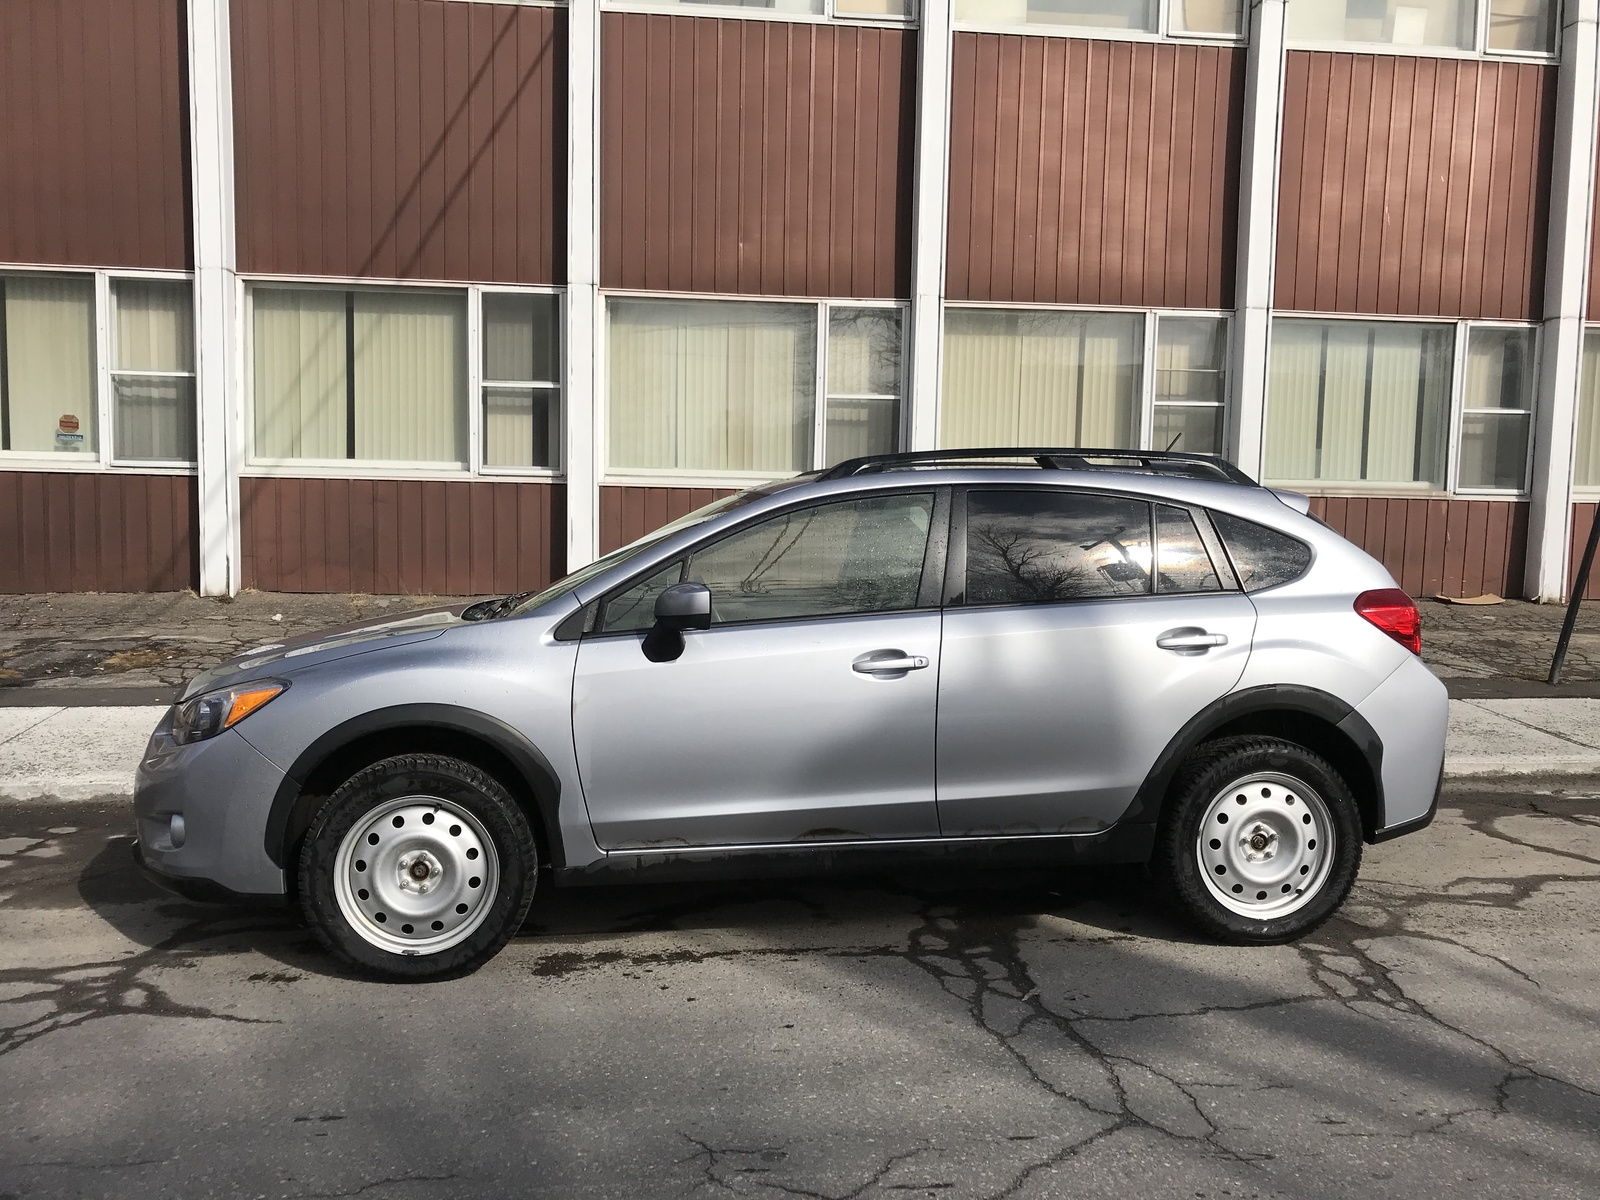 Subaru XV Crosstrek Questions - Can I list my own car without being ...